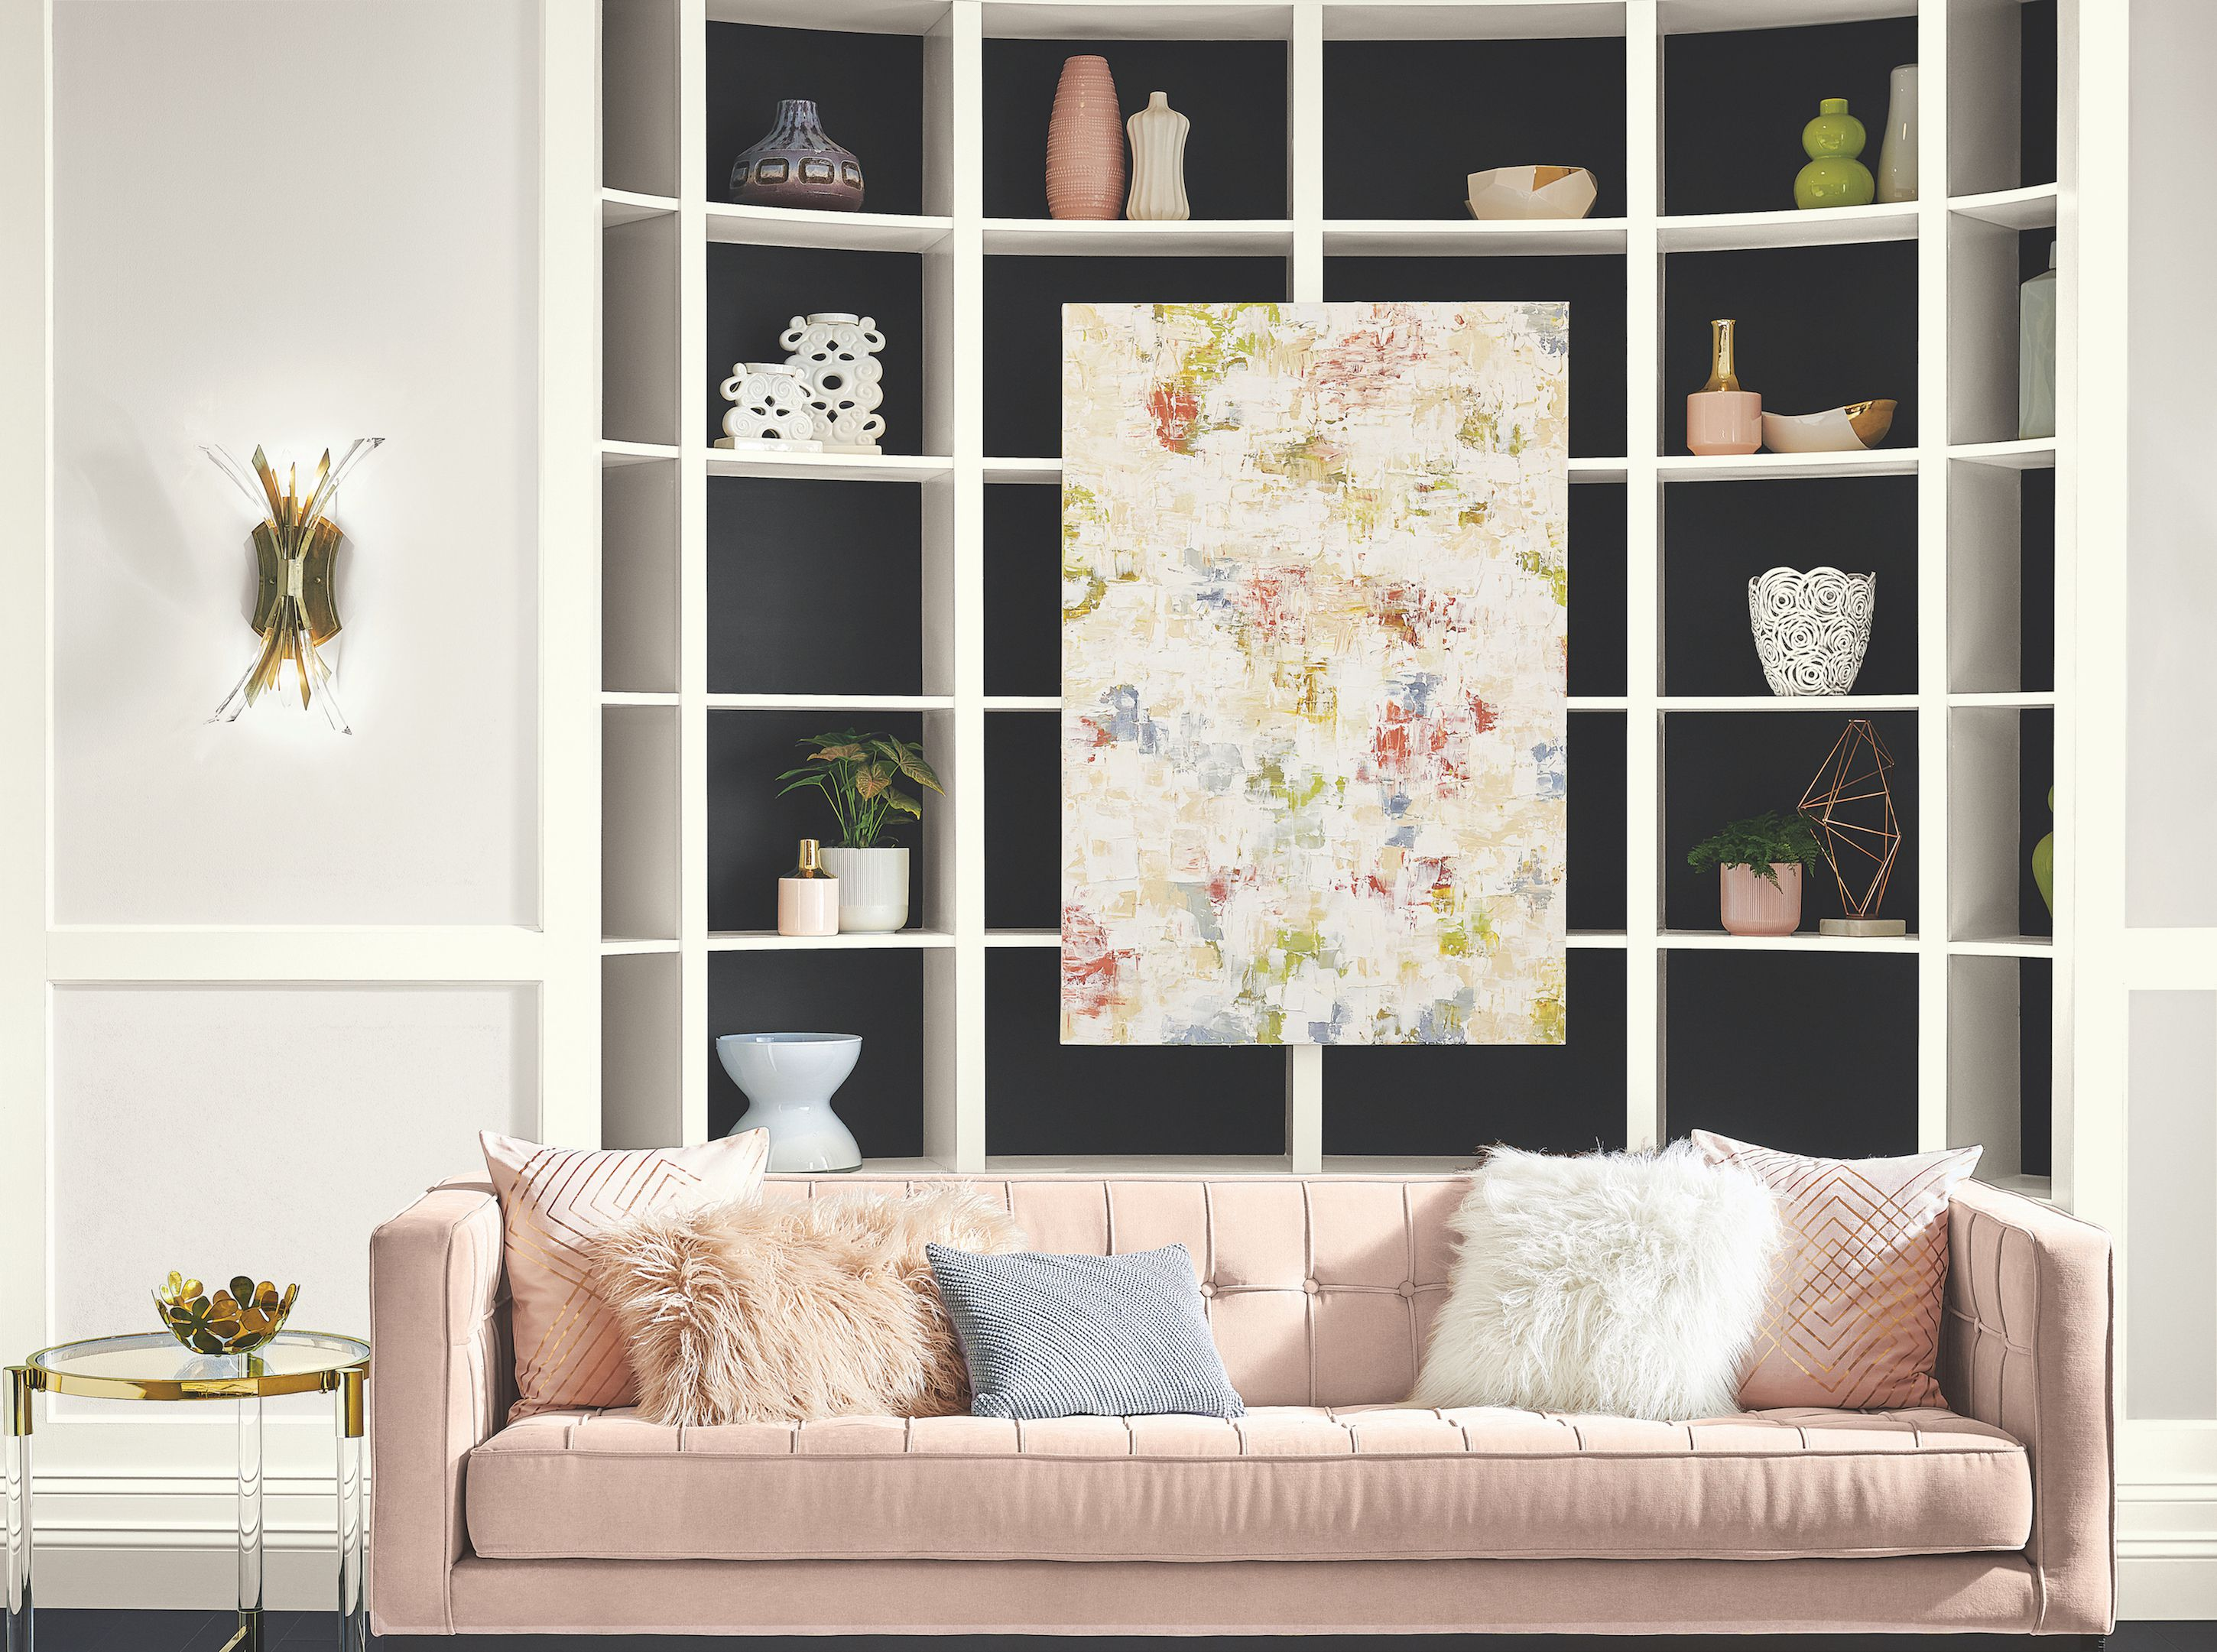 Contemporary living room with pink couch